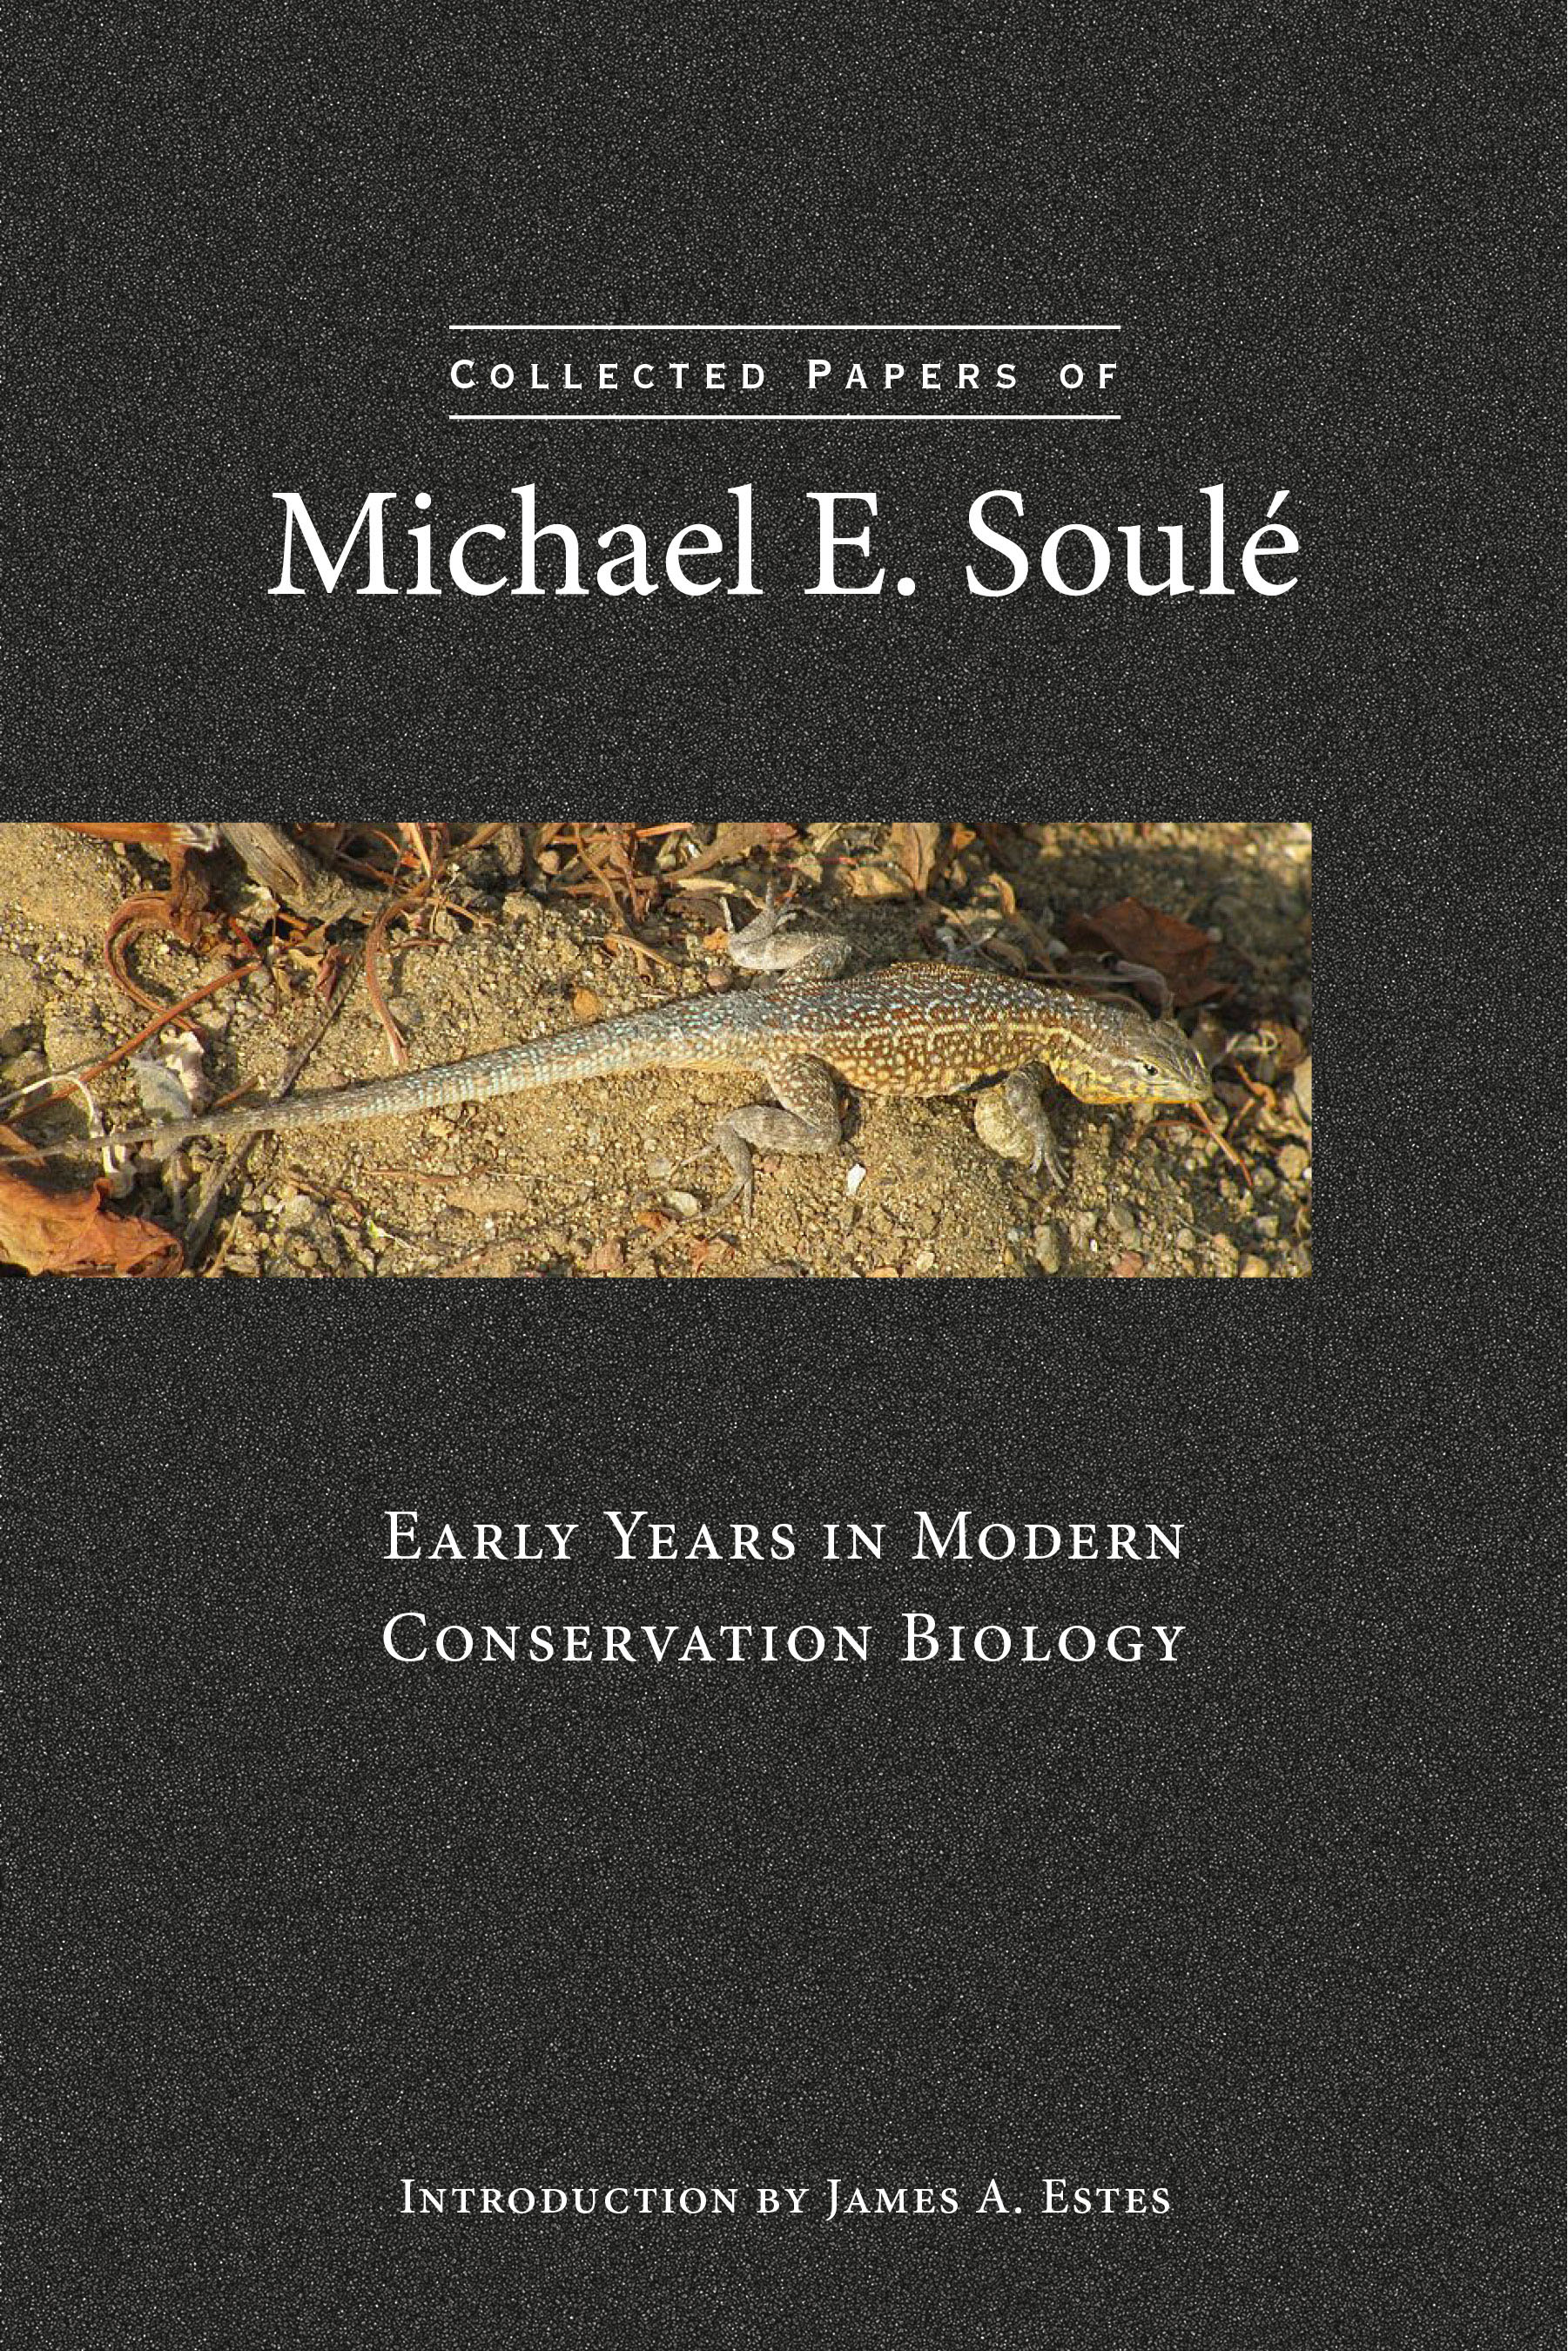 Collected Papers of Michael E. Soulé: Early Years in Modern Conservation Biology